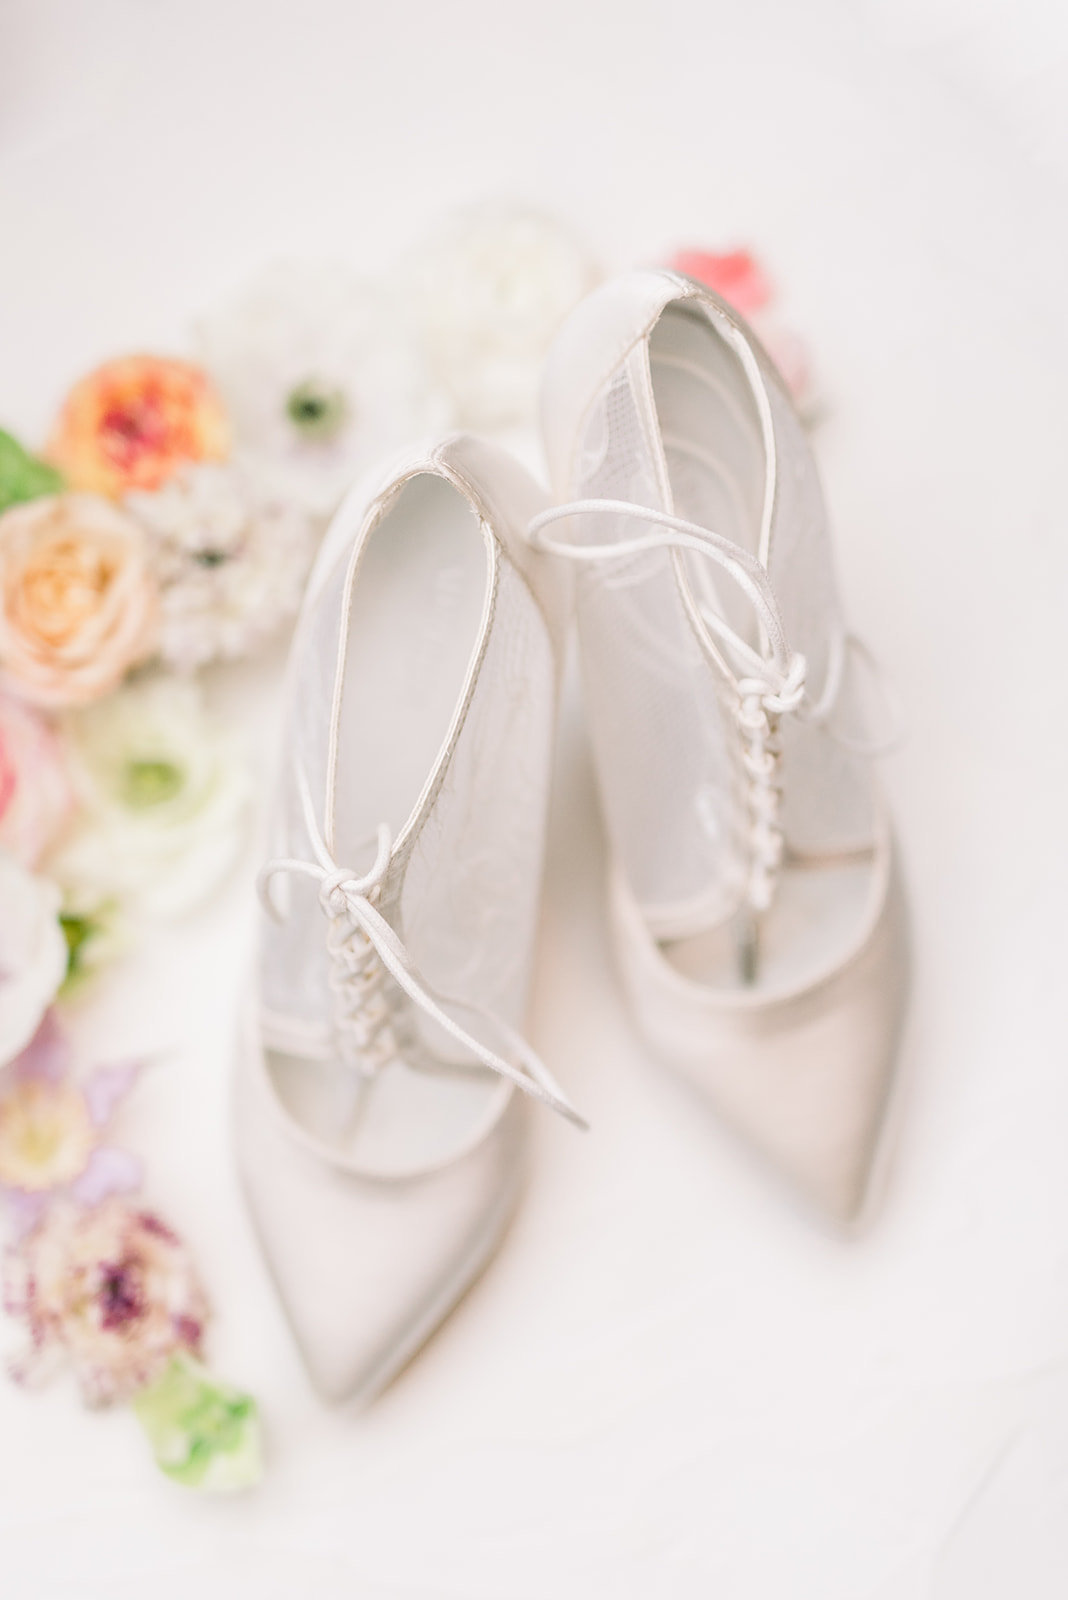 laure_lalliard_design_Art Nouveau Elopement_paris_Janine_Licare_Photography-bridal shoes_menbur_ (2)